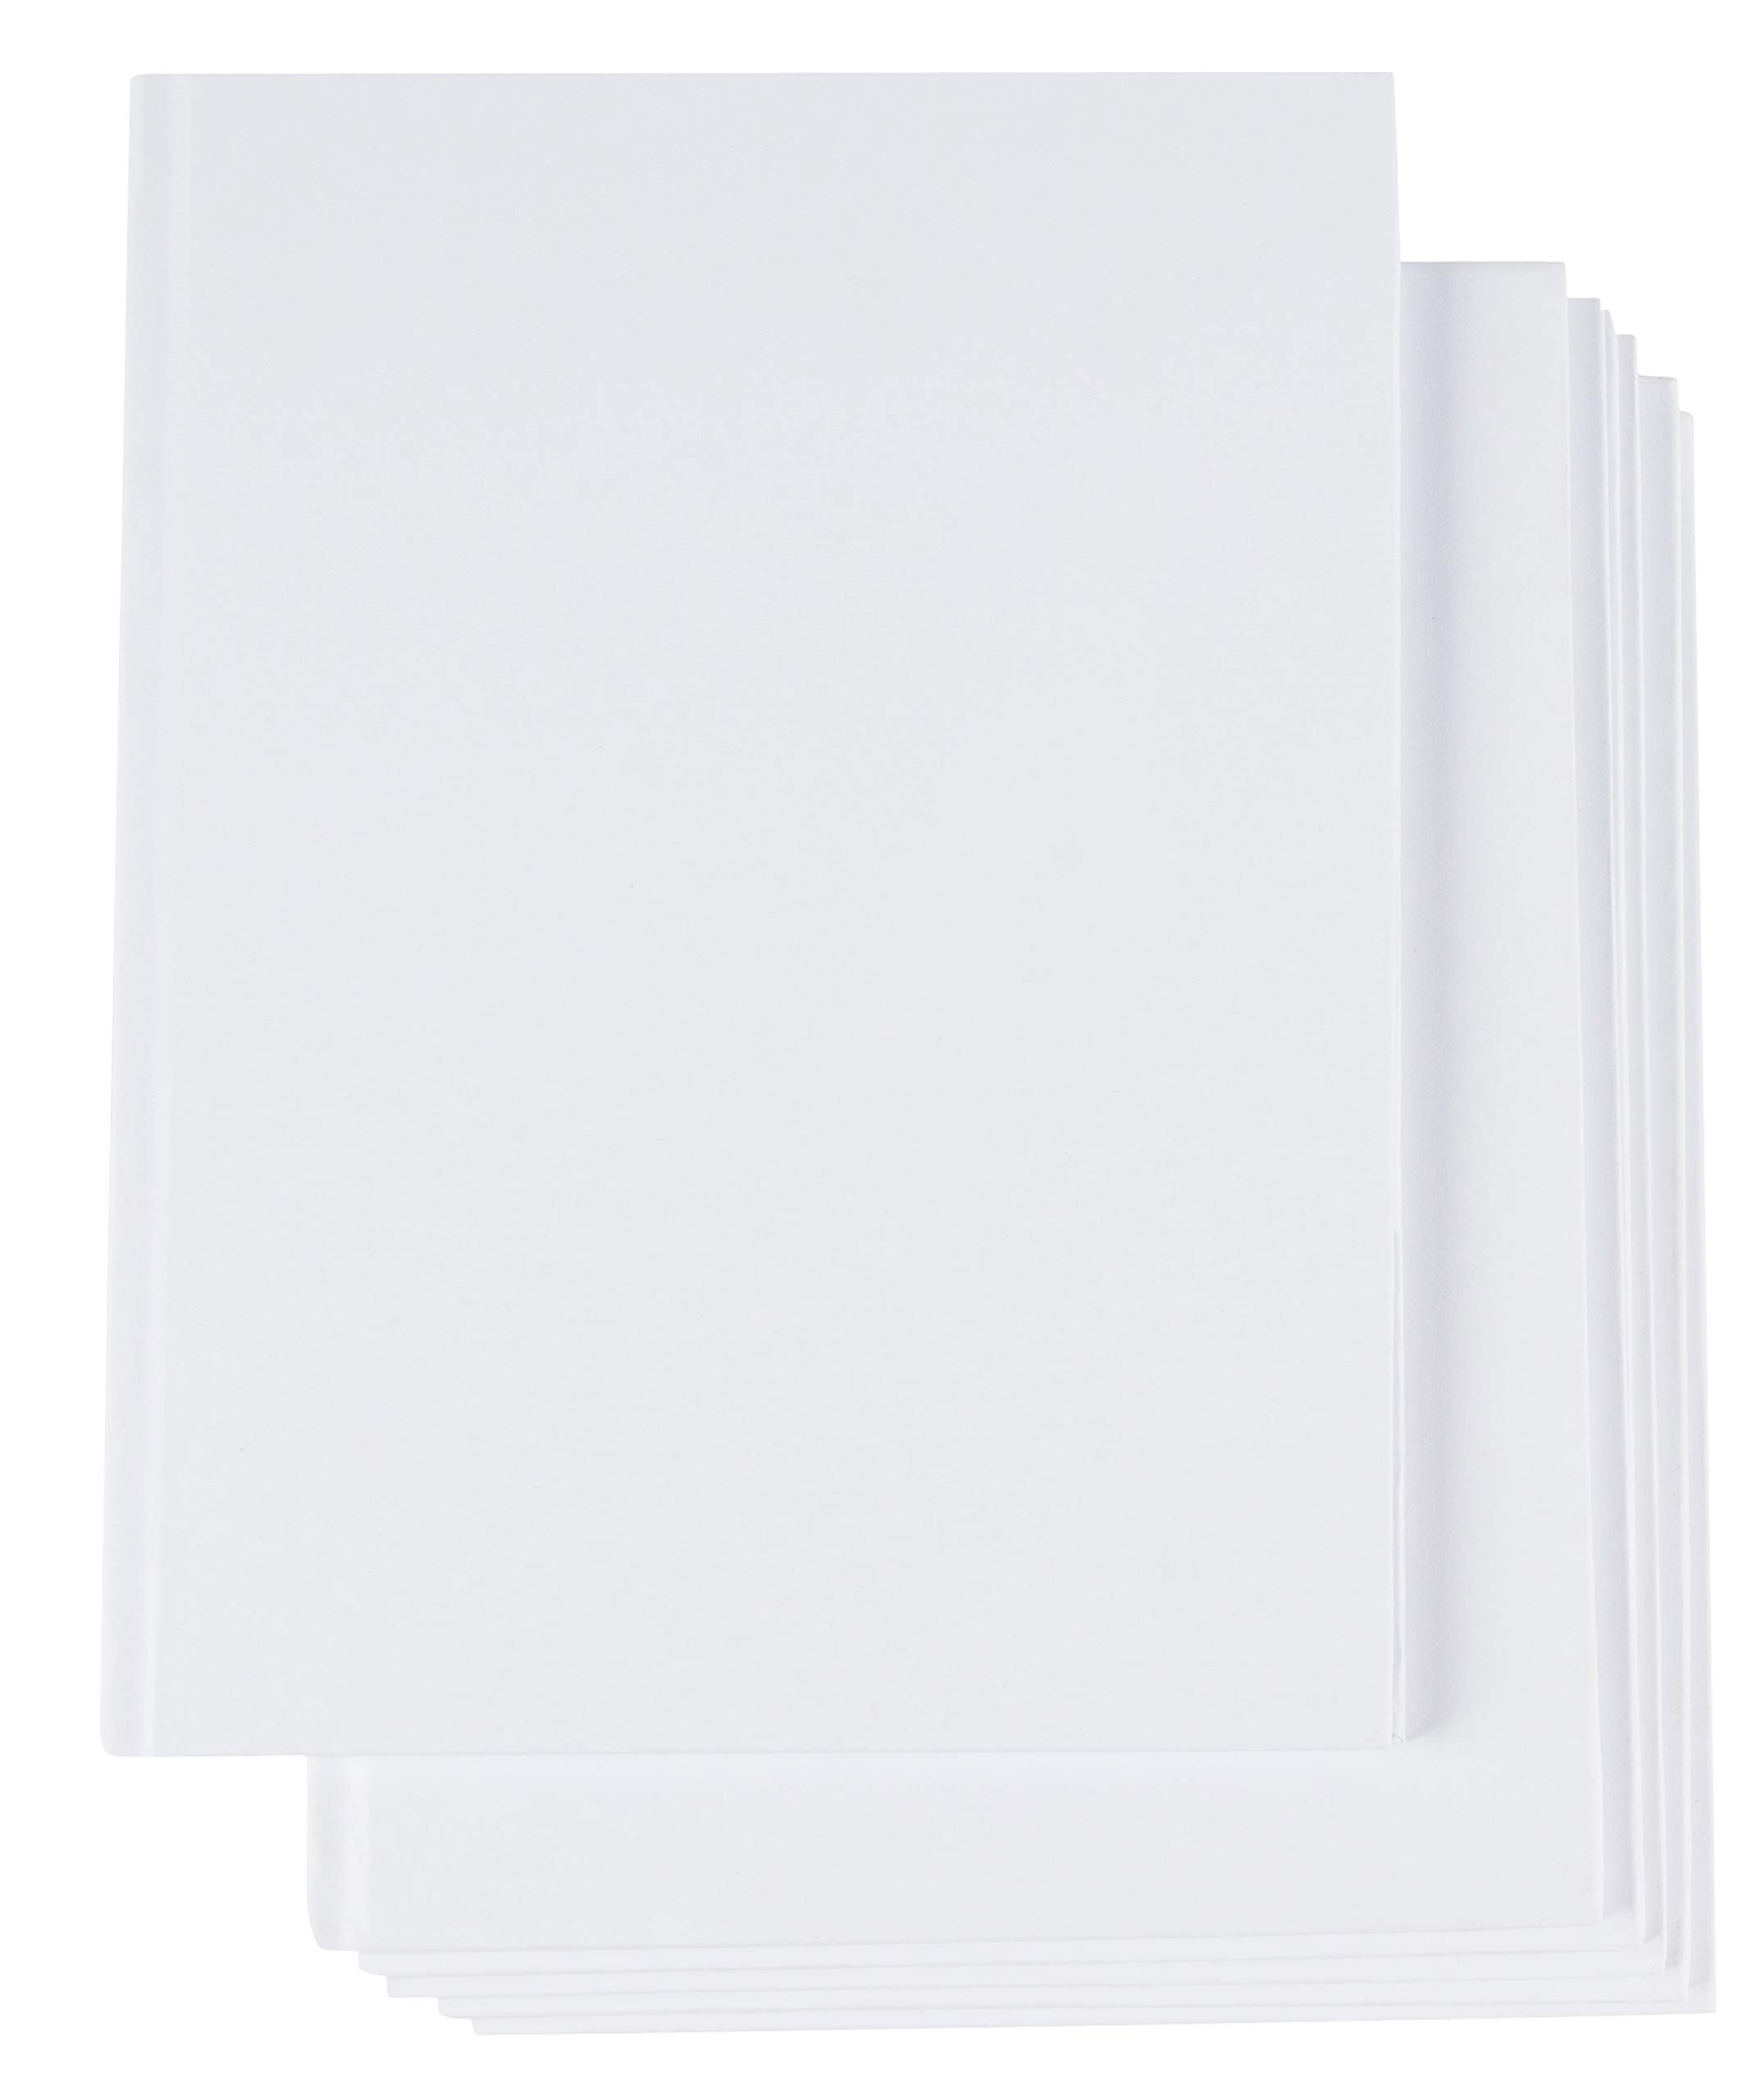 Hardcover Blank Book - 6-Pack Unlined Sketchbooks, Unruled Plain Travel Journals for Students Sketches, Children's Writing Books, Creative Class Projects, White, 6 x 8 Inches, 18 Sheets Each